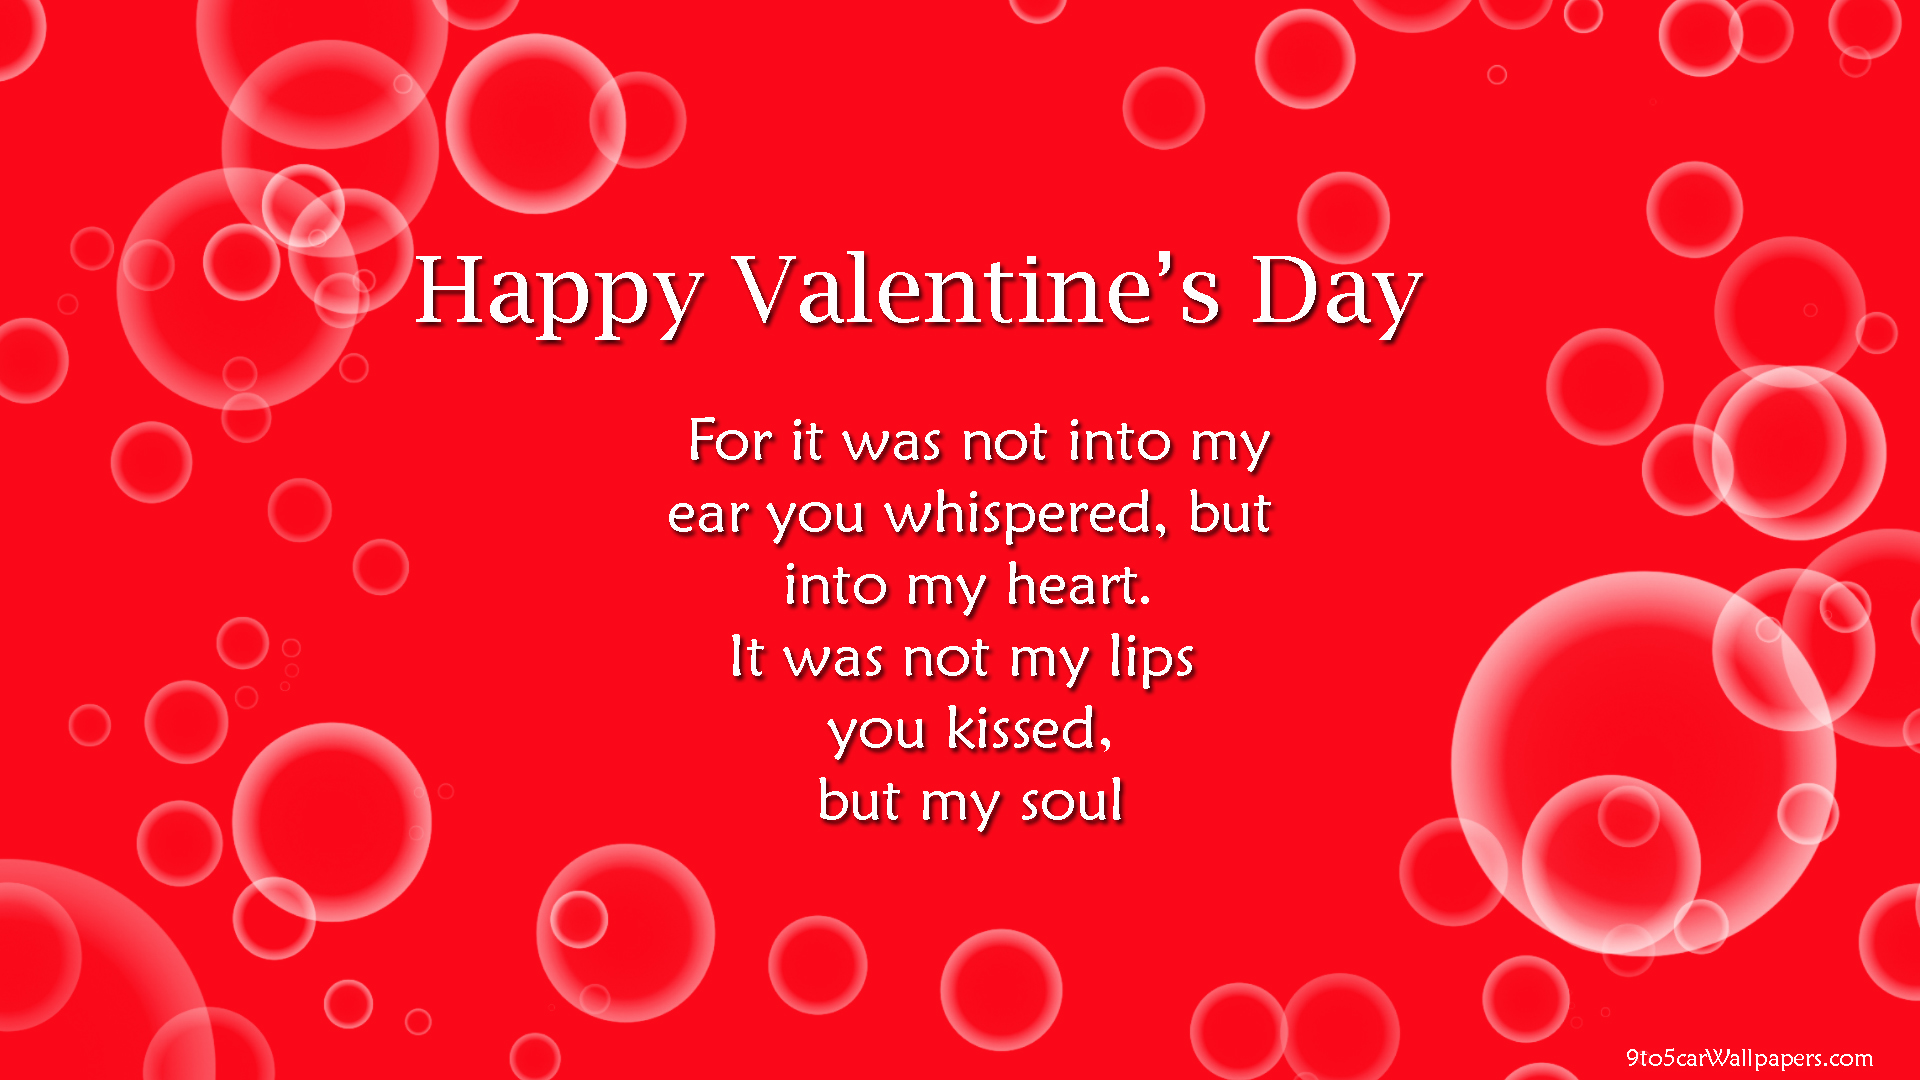 happy-valentine's-Day-images-cards-quotes